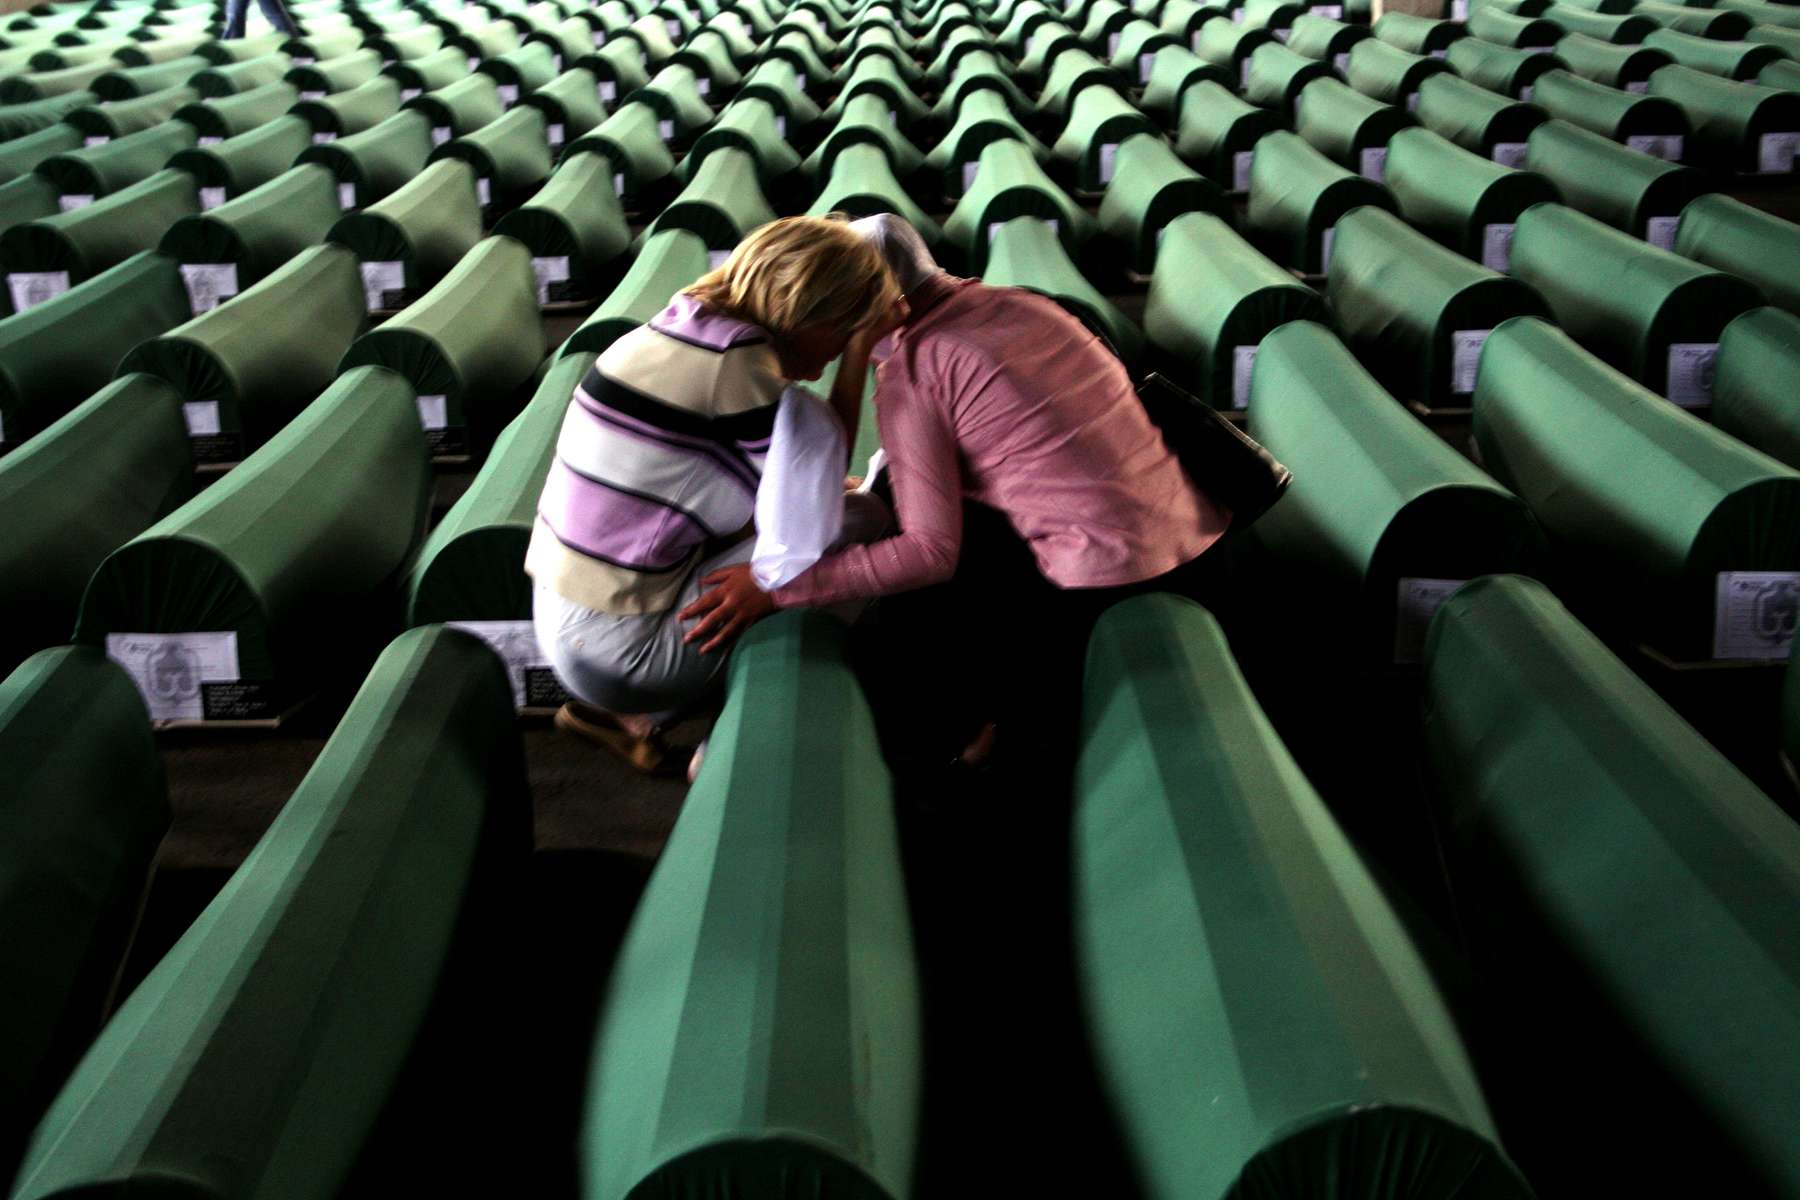 A woman crying over the coffin of a family member is comforted by a friend, among rows of tabuts, or traditional Muslim coffins, containing the remains of more than 600 men and boys who will be buried at the Srebrenica memorial site on July 11. The burial will mark the tenth anniversary of the massacre of some 7,000 to 8,000 Muslim men and boys at the hands of Serb forces during the 1992-95 war. The killings were the worst genocide in Europe since the end of World War II.